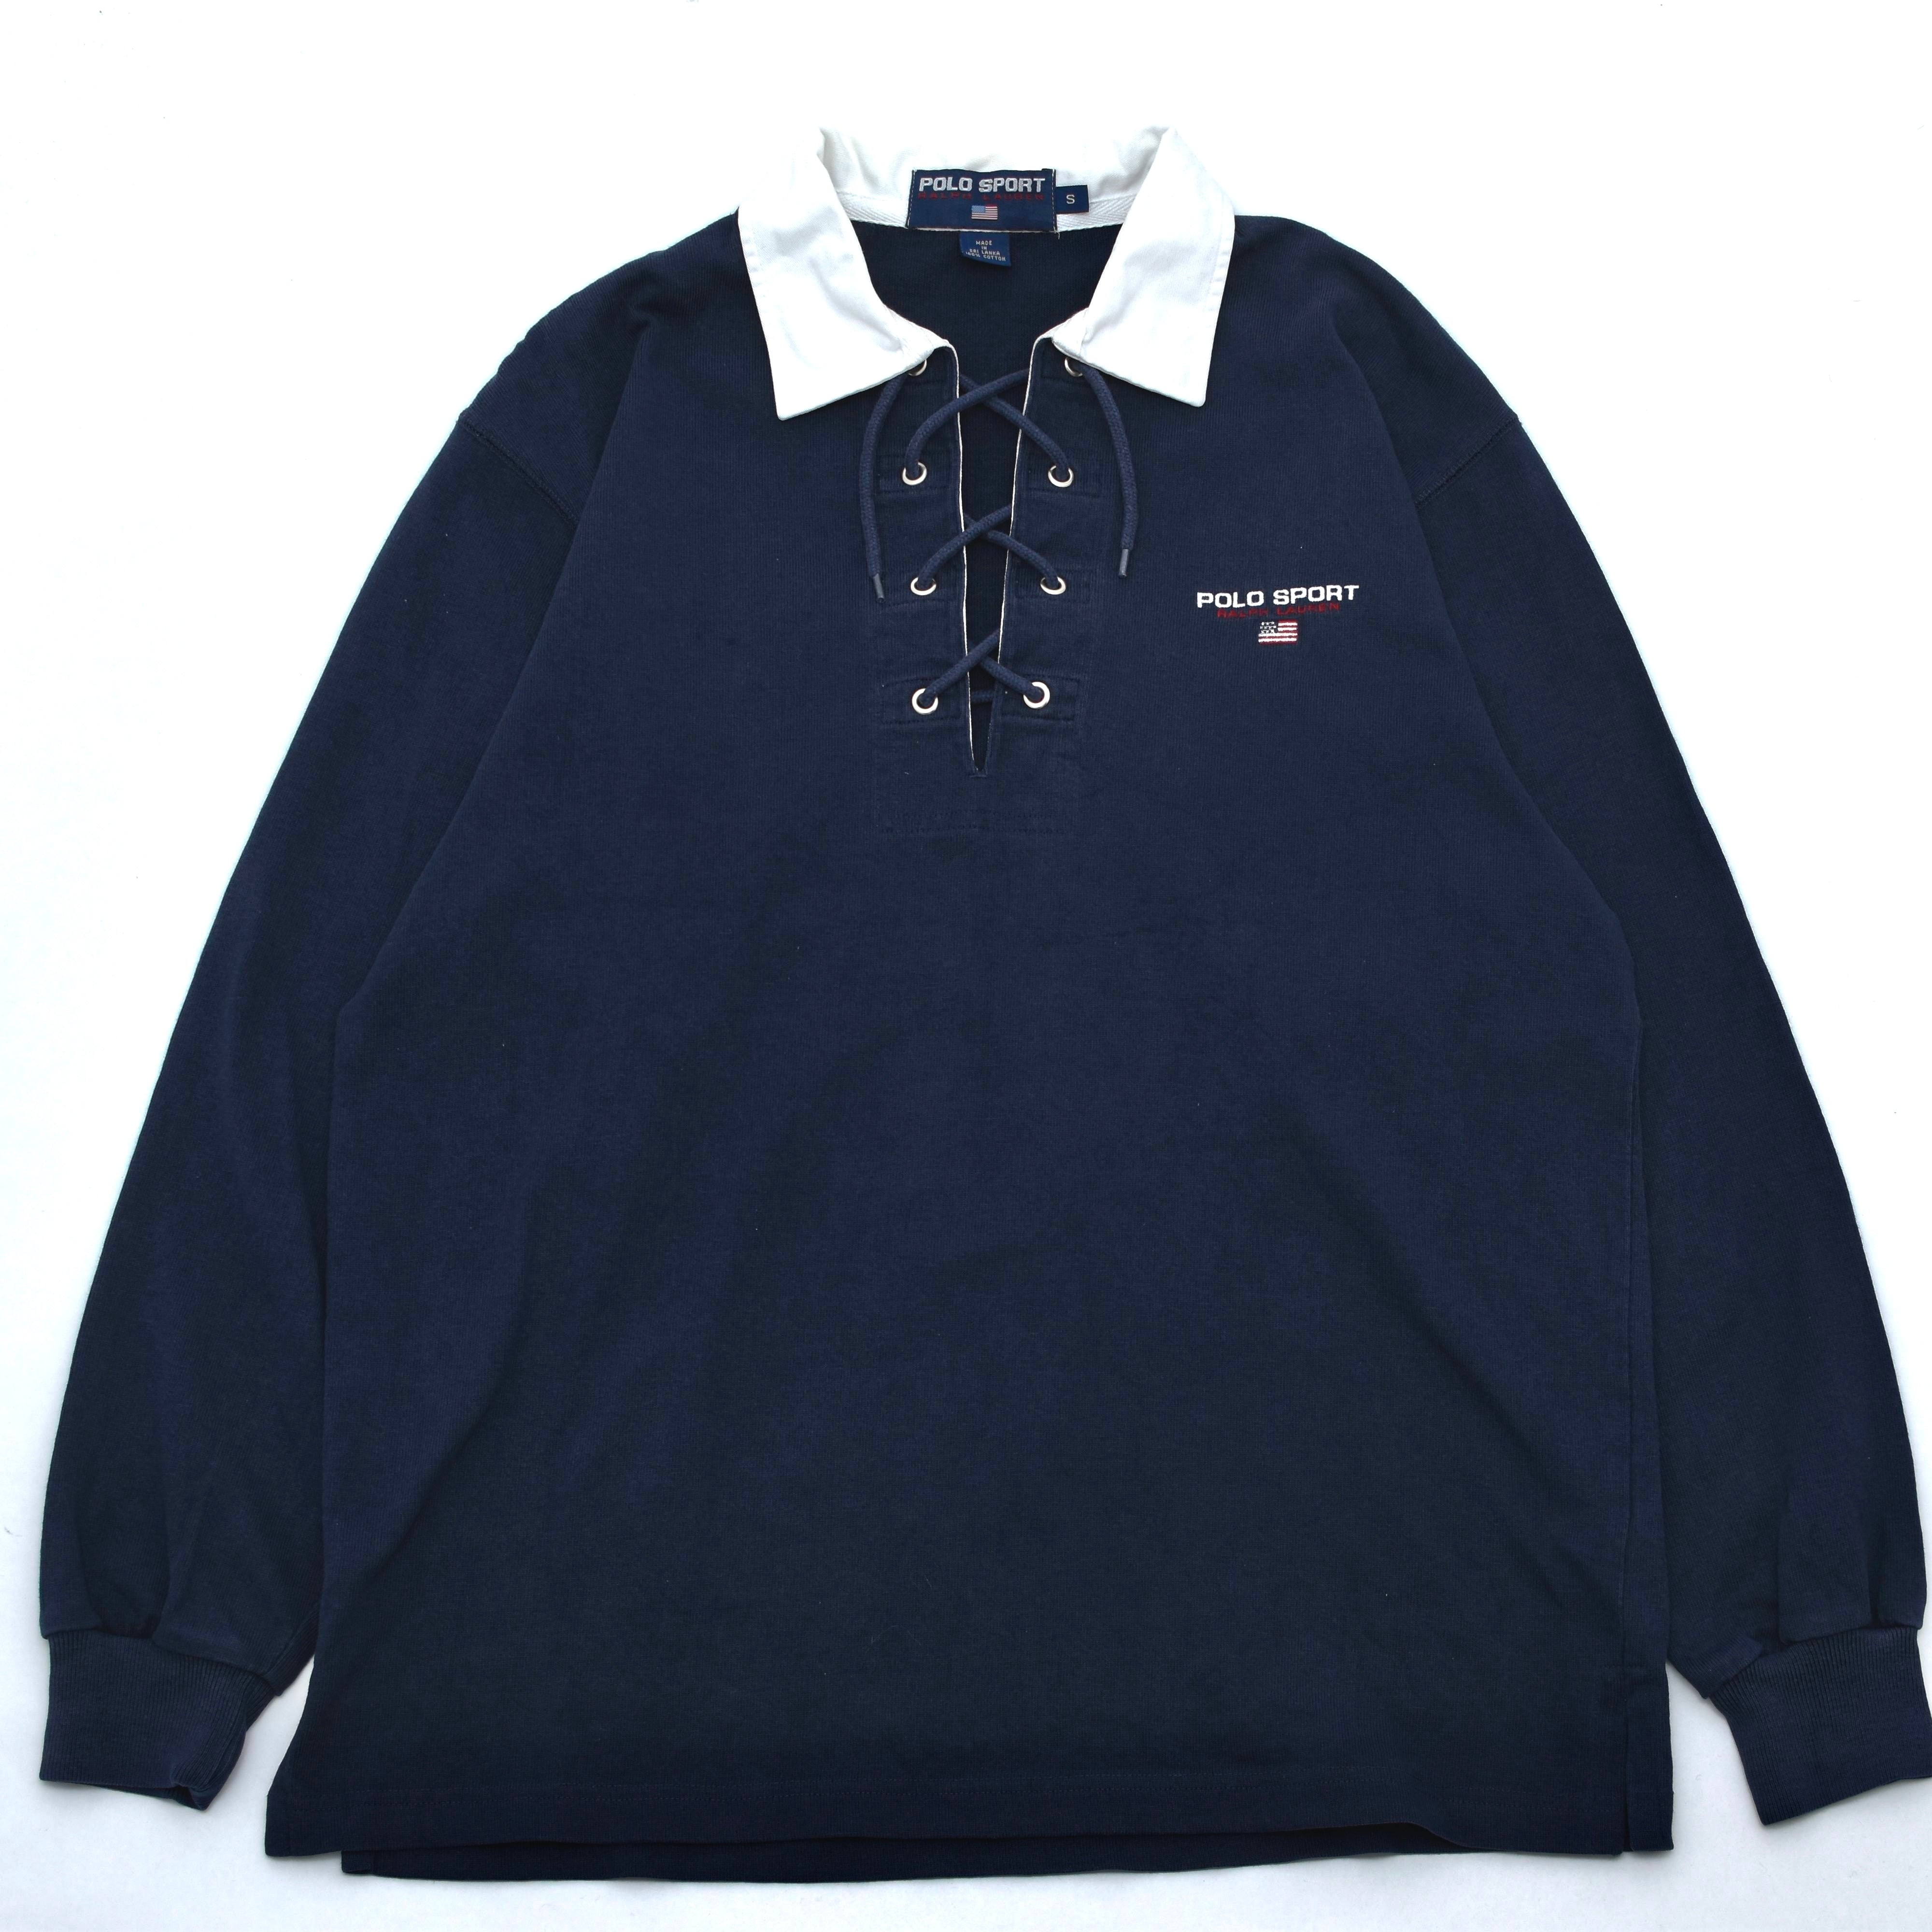 POLO SPORT lace up rugby shirt